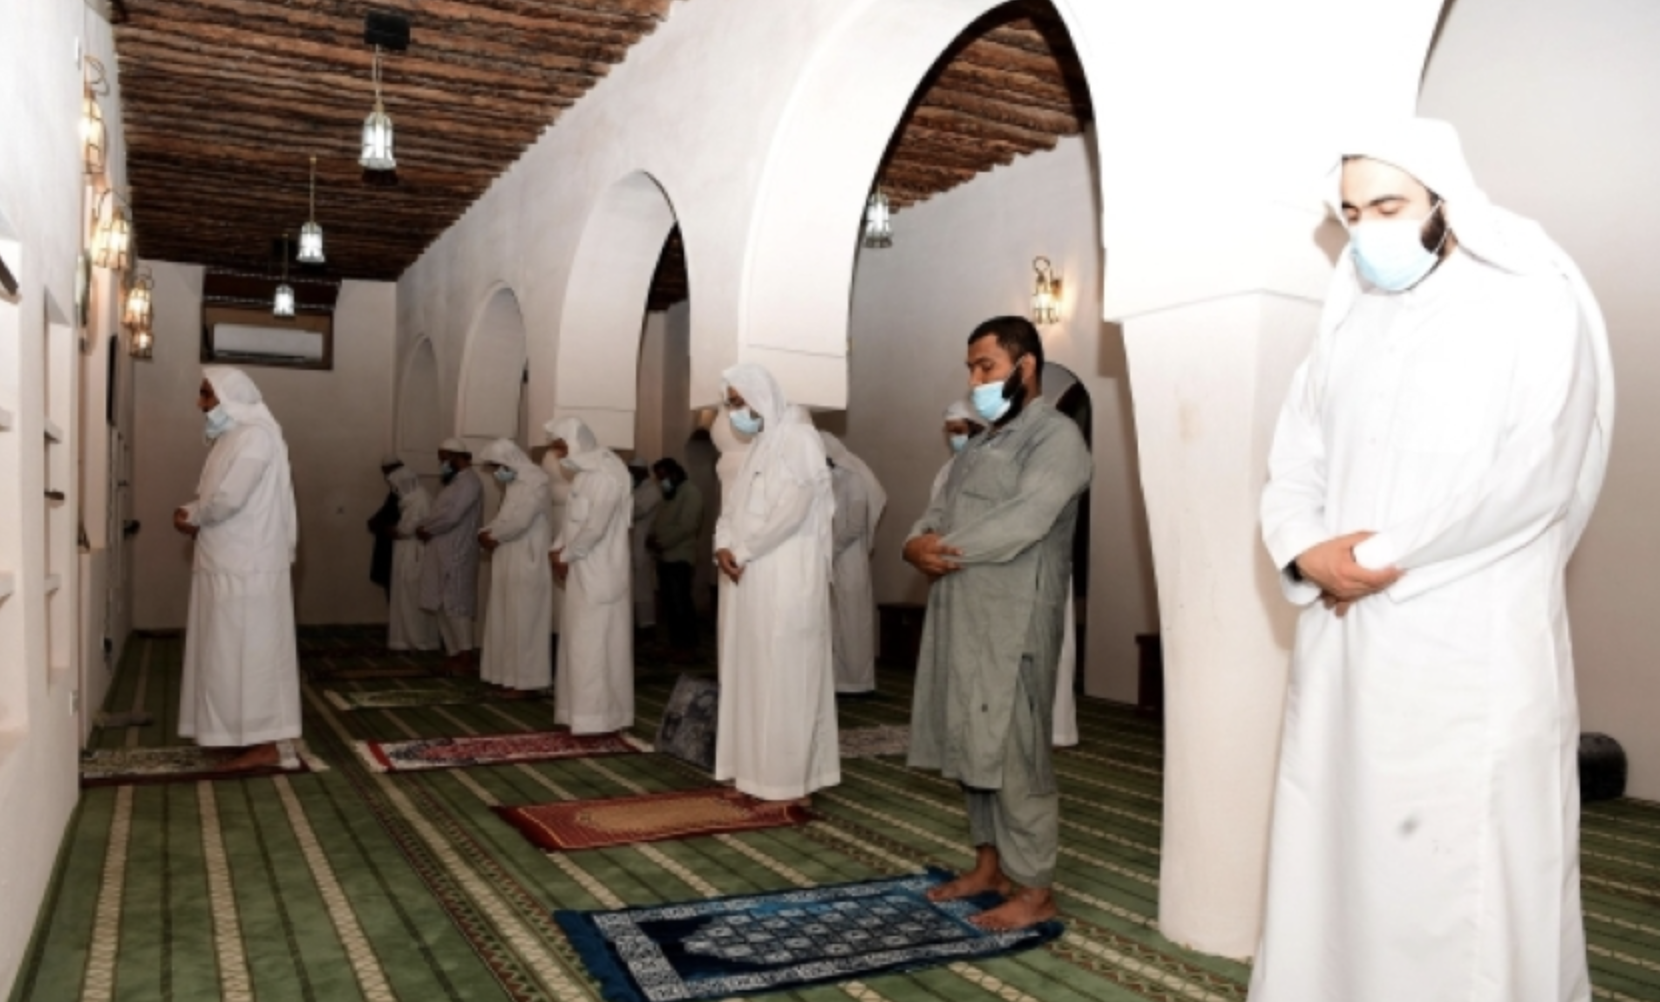 Look: 300-year-old mosque reopens in Saudi Arabia